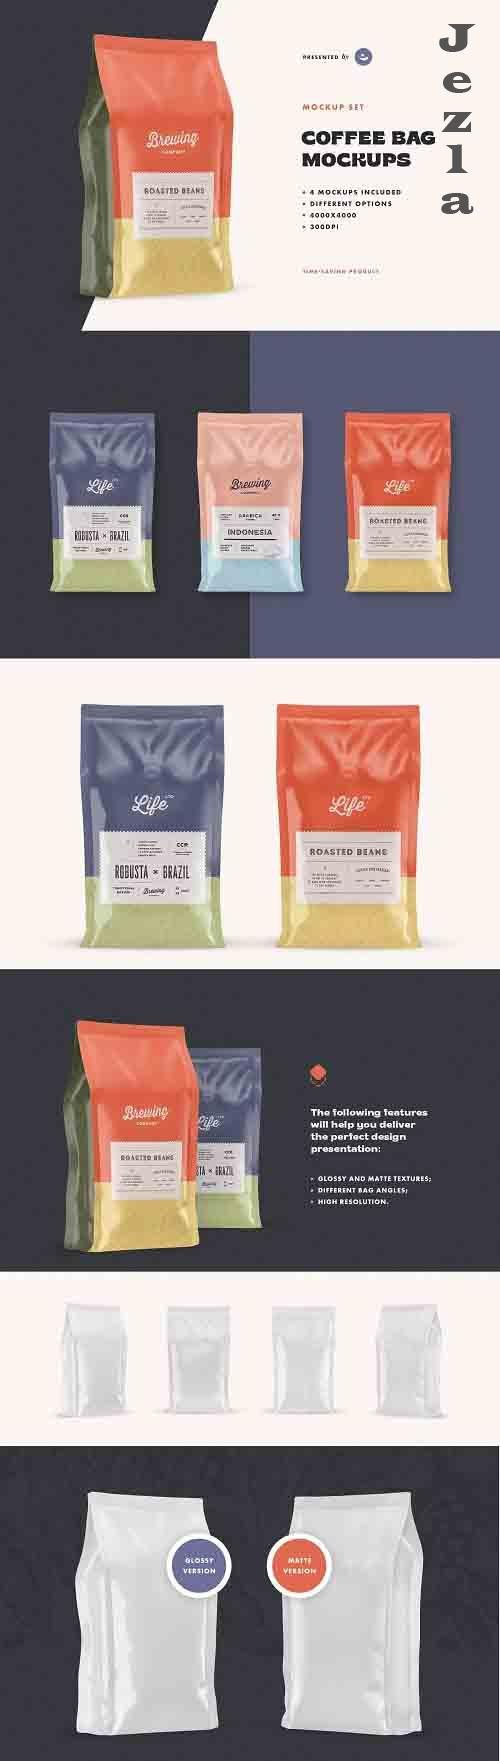 Coffee Bag Mockup Set - 5186940